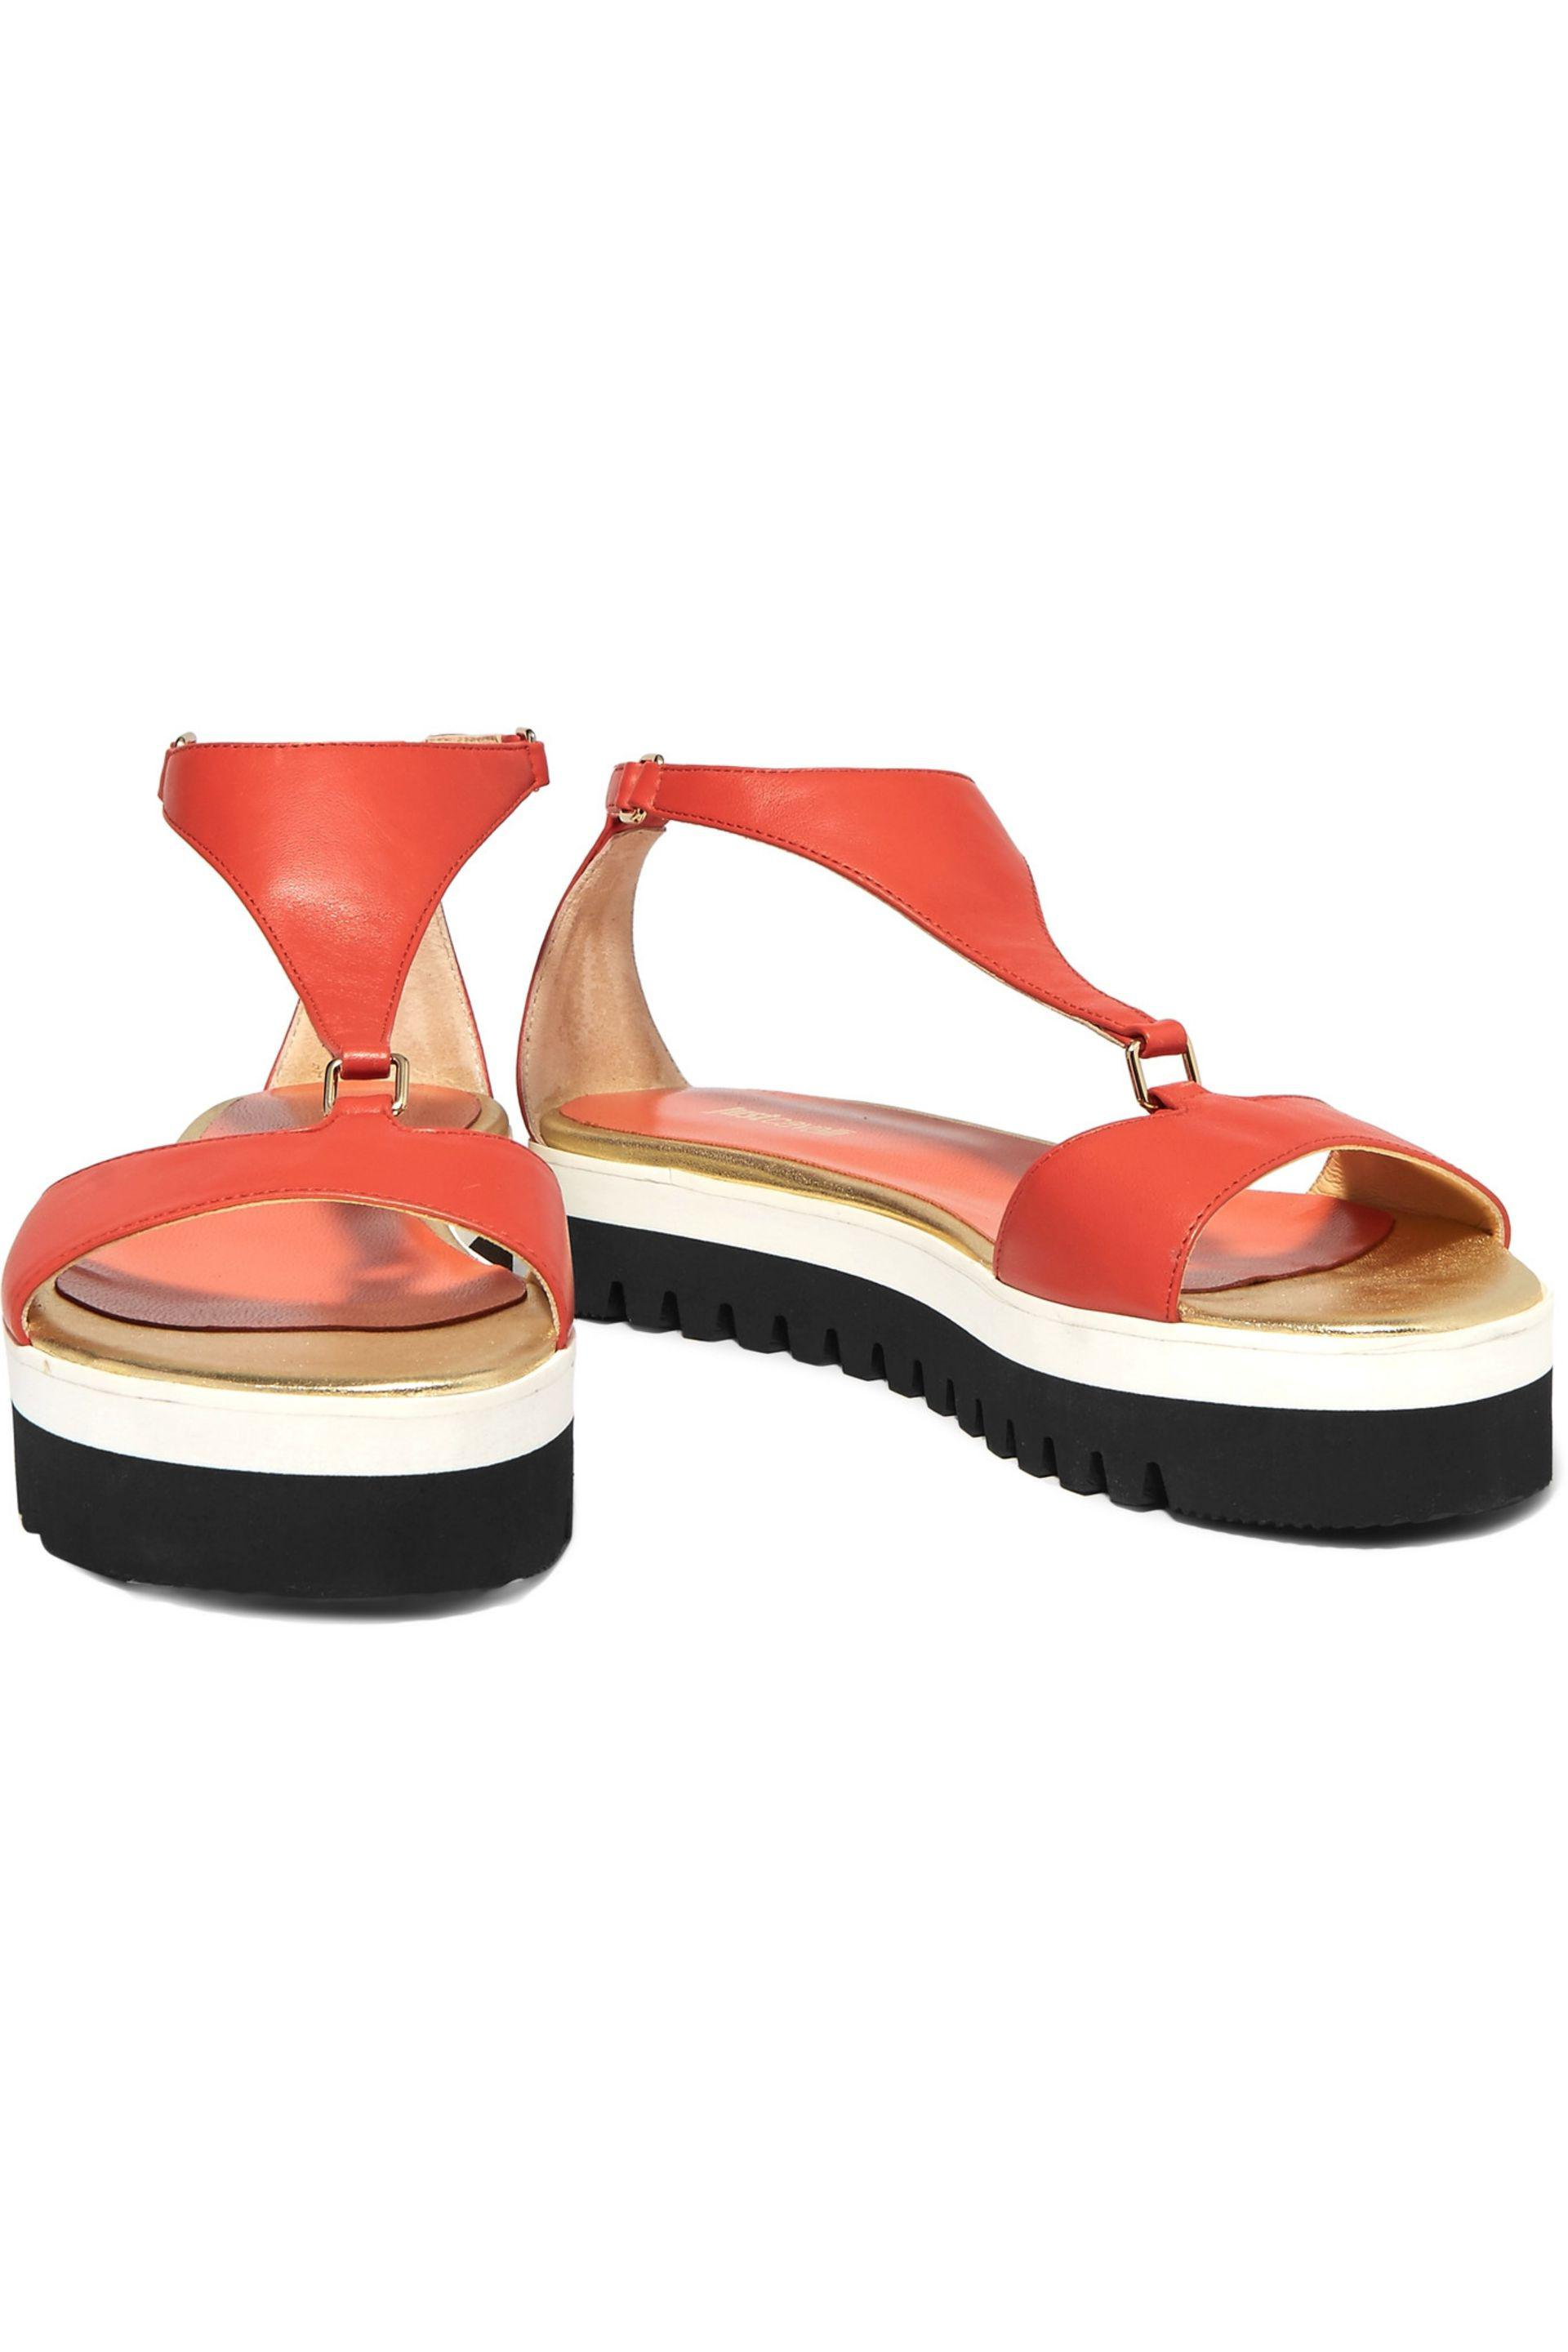 Just Cavalli Woman Leather Platform Sandals Tomato Red Size 40 Just Cavalli Clearance Cheap Real Free Shipping Discount iZ5kJqBI7G